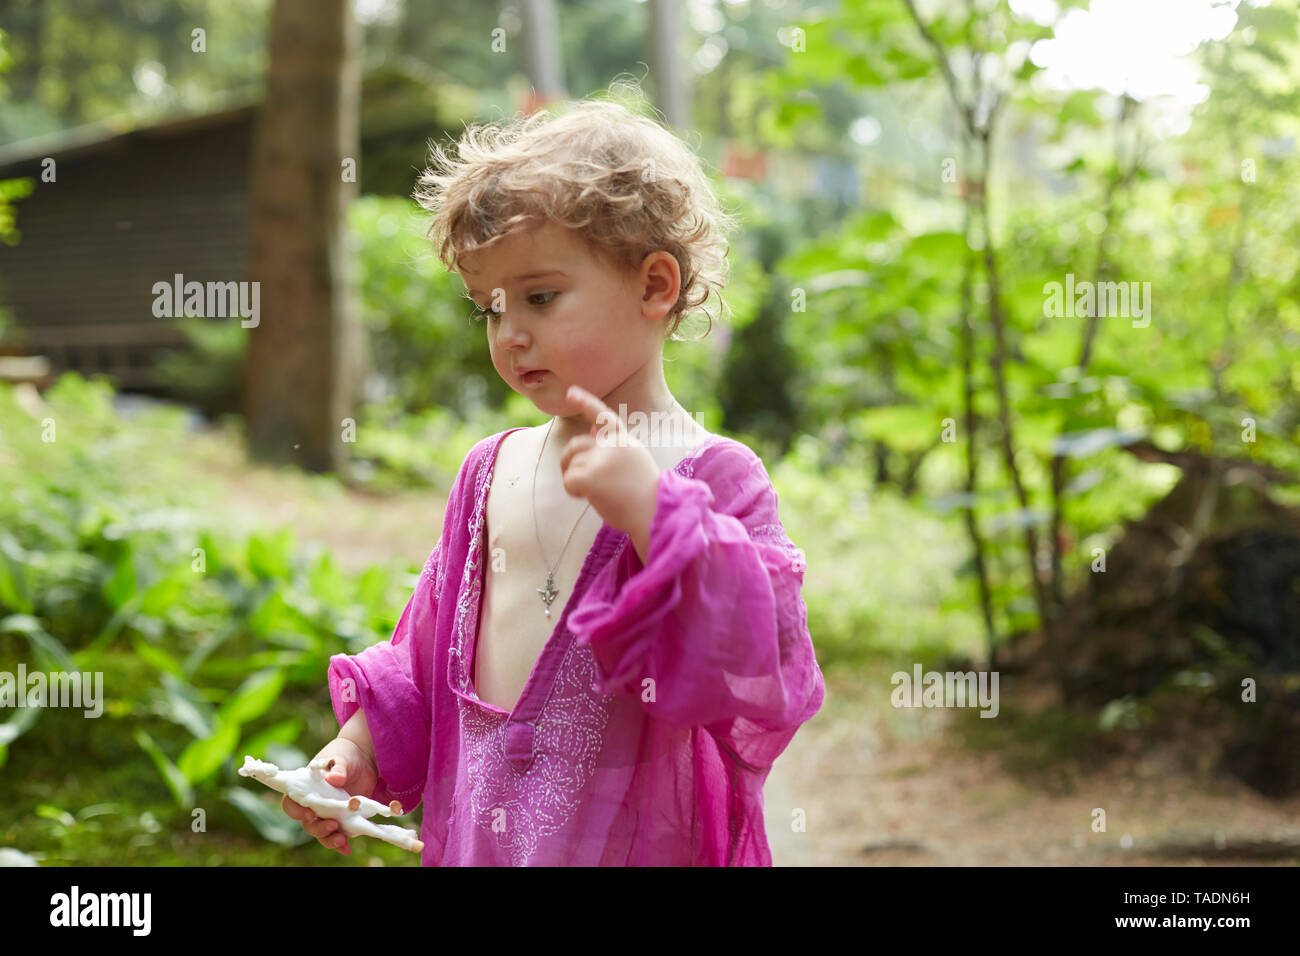 Little girl wearing pink tunic in nature holding horse figurine - Stock Image